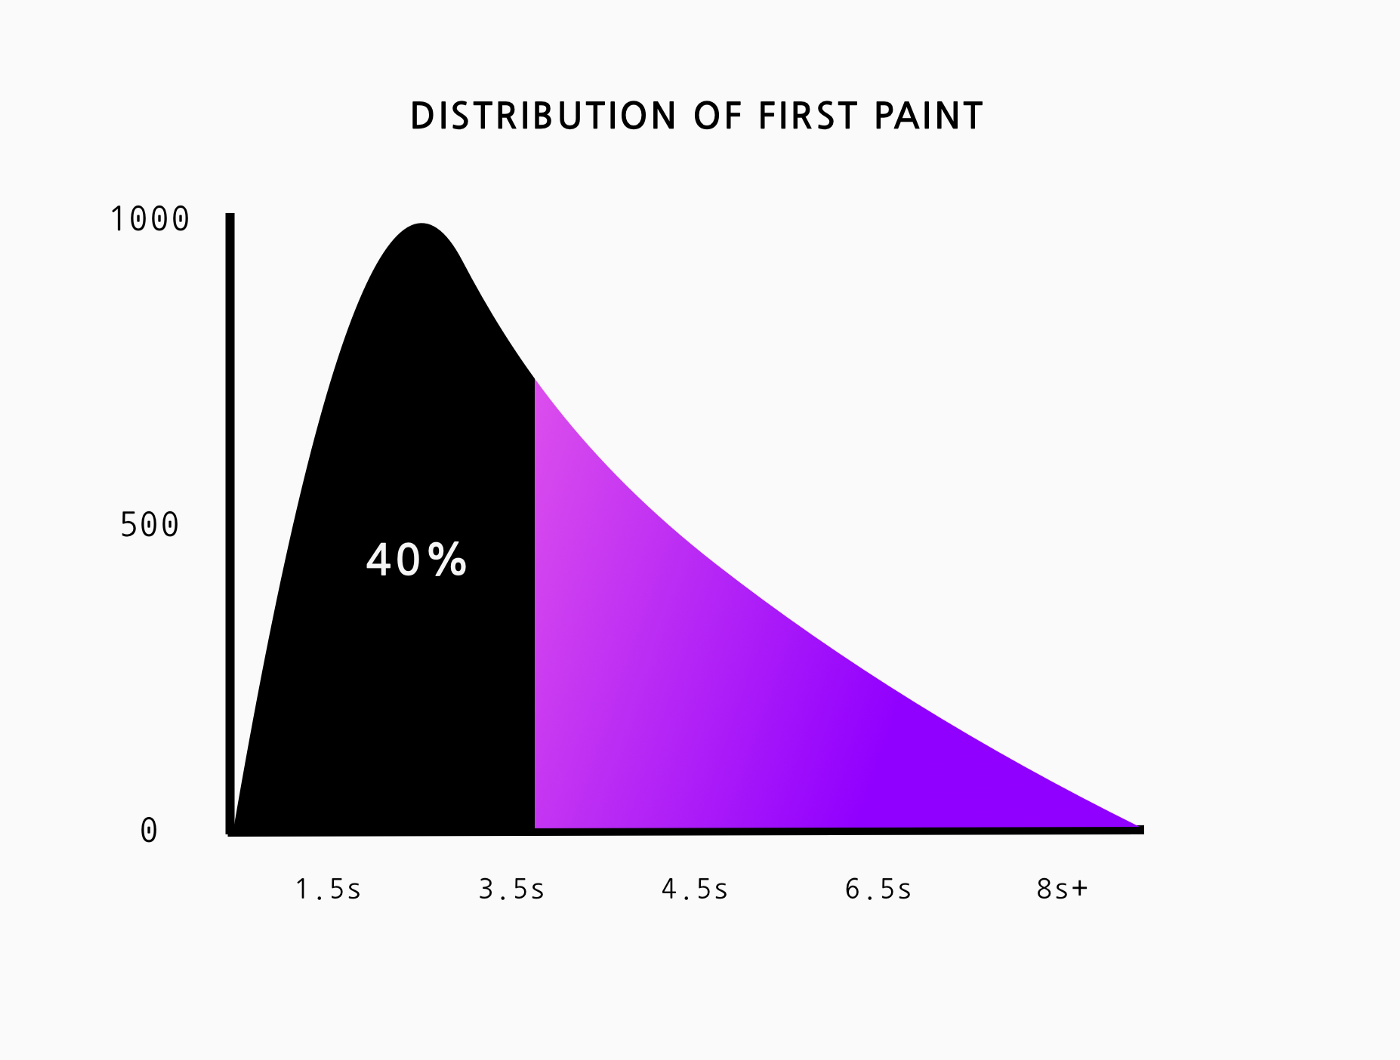 An area chart of First Paint where the first 40% is masked in black showing it represents 40% of the distribution.